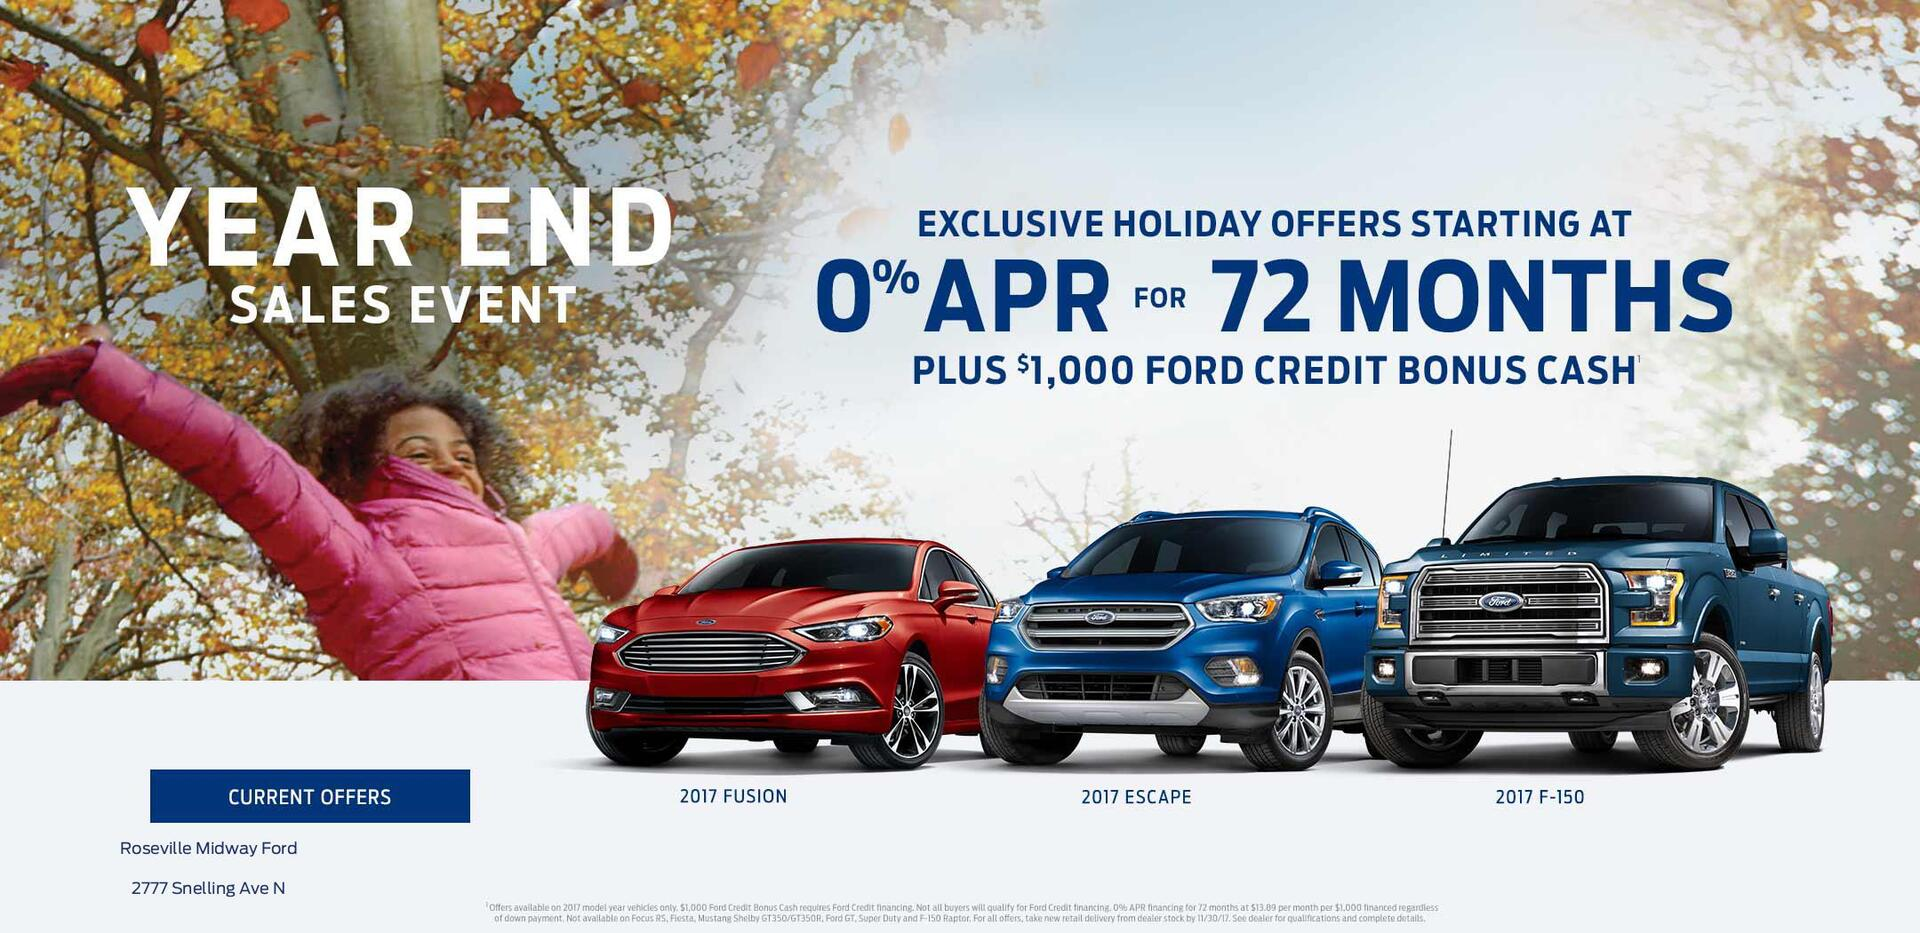 2017 Year End Sales Event